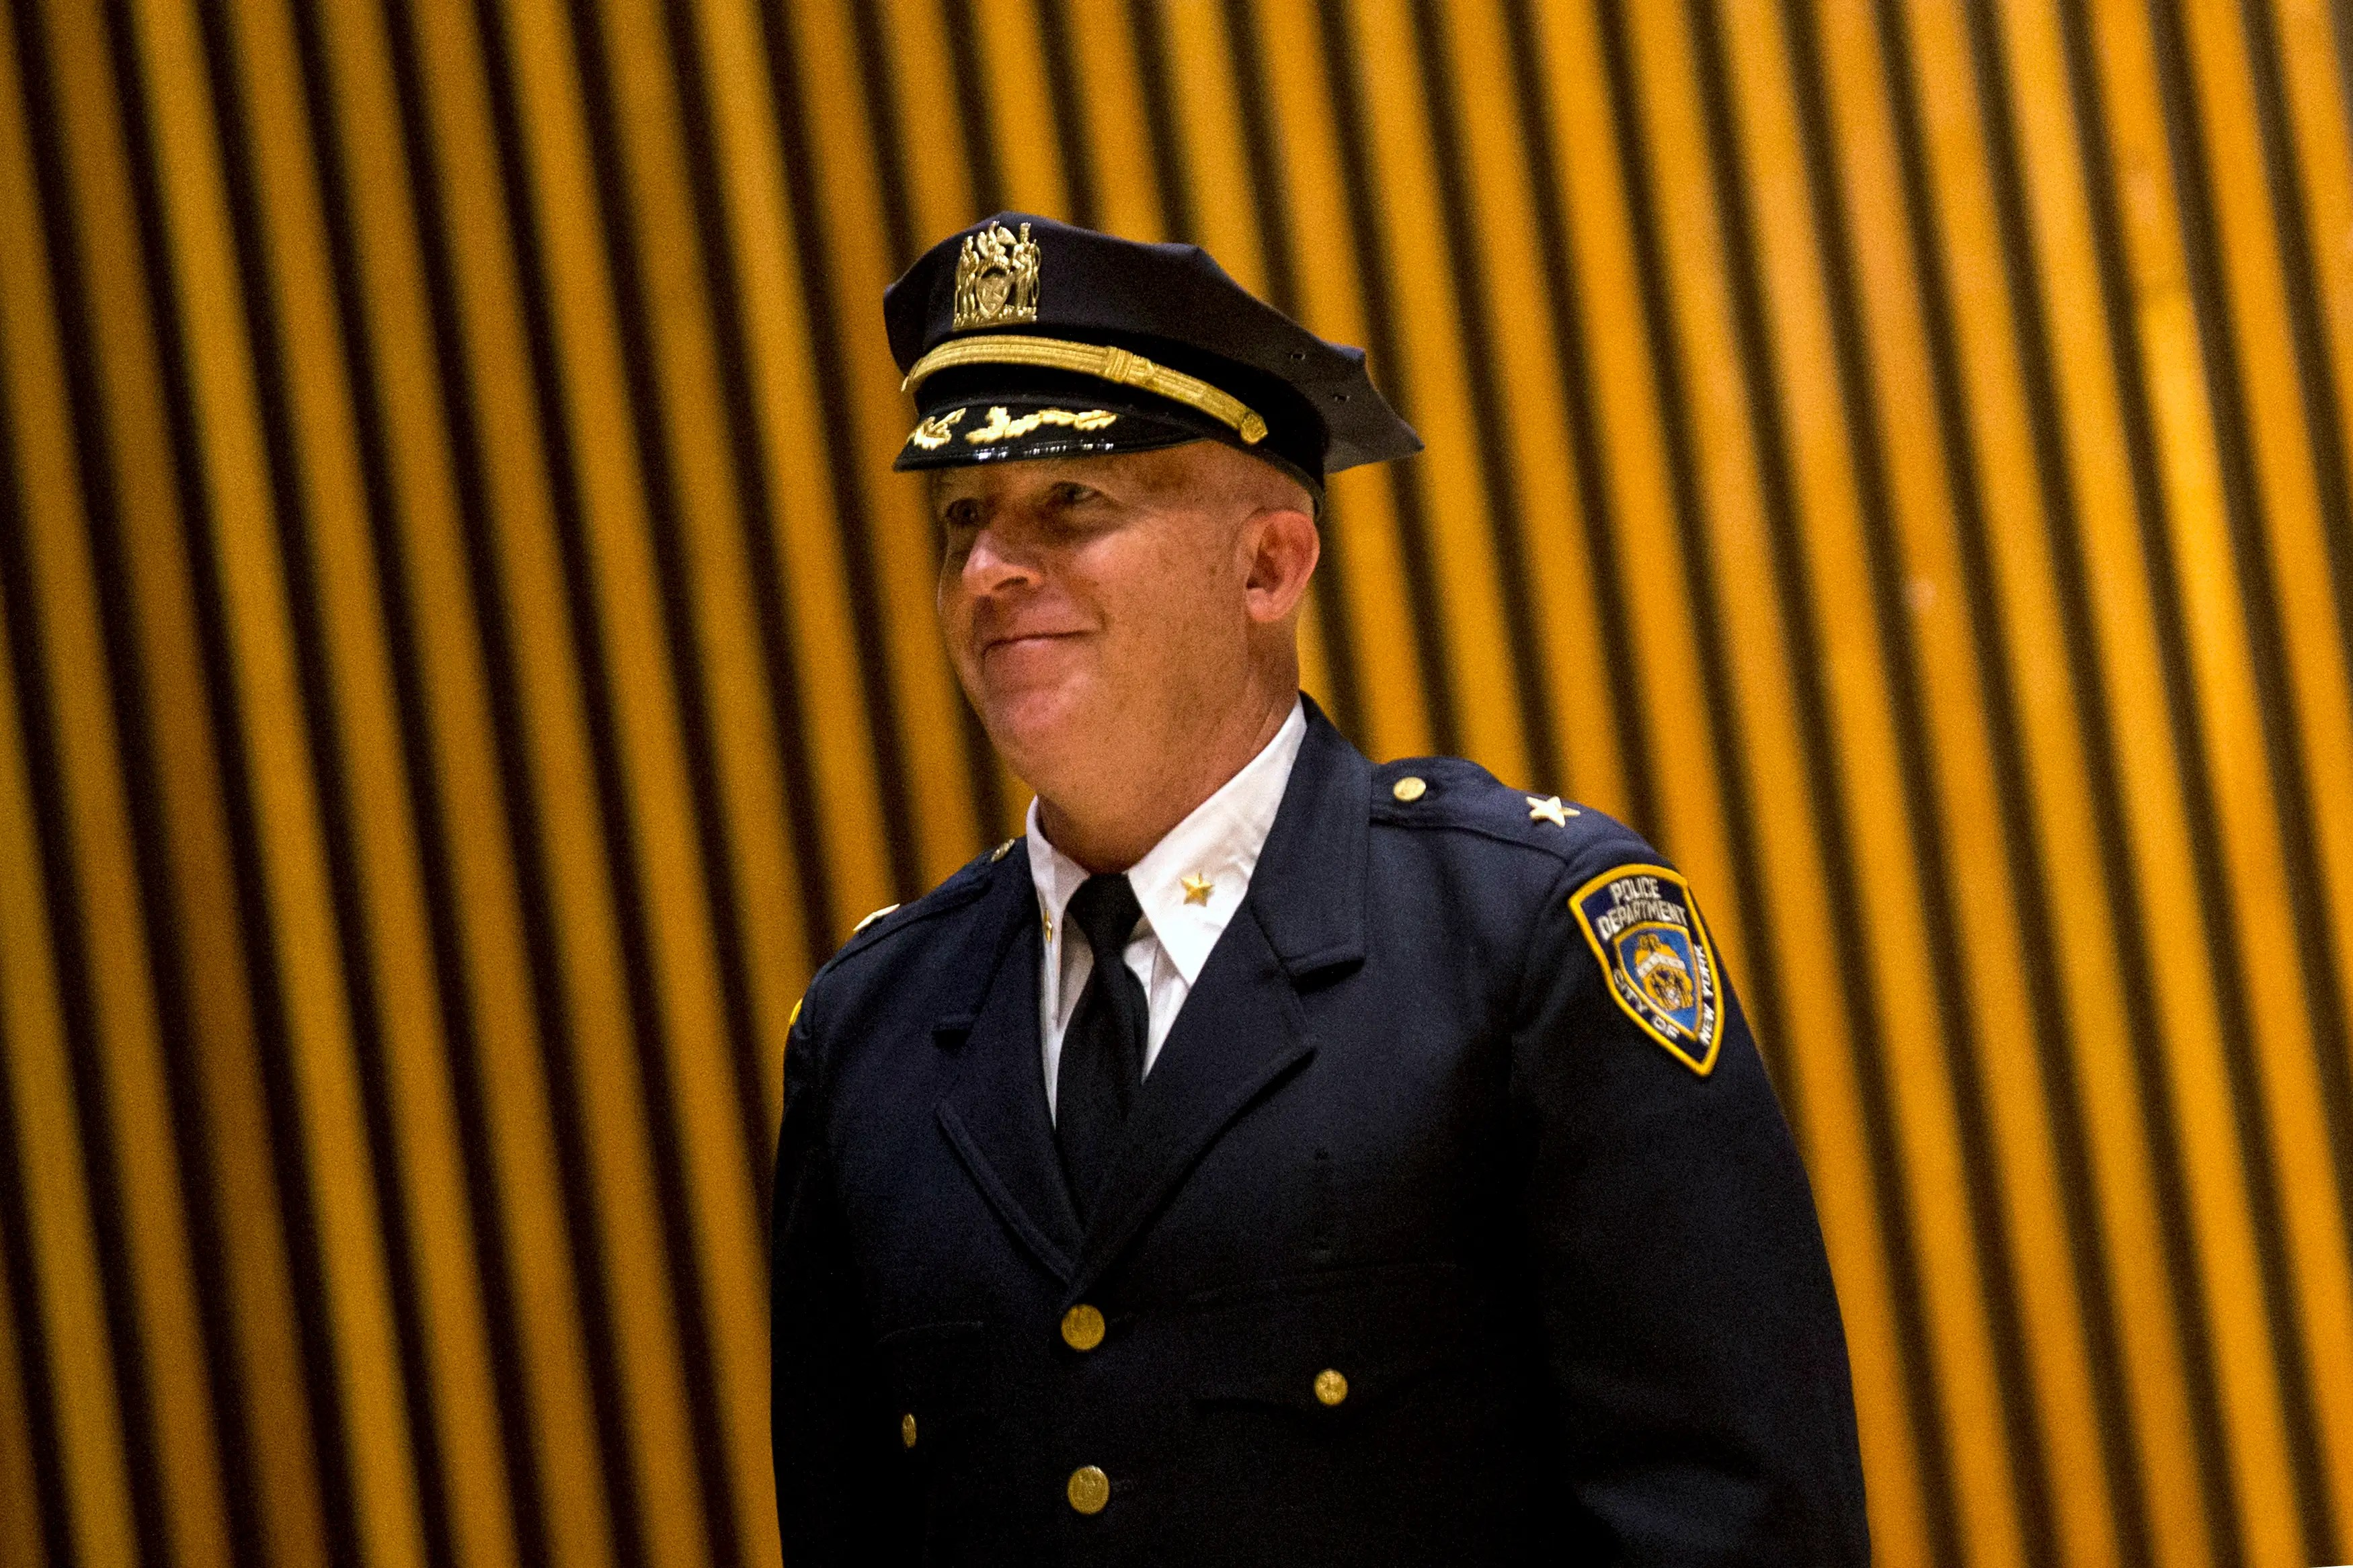 james o'neill nypd chief police commissioner